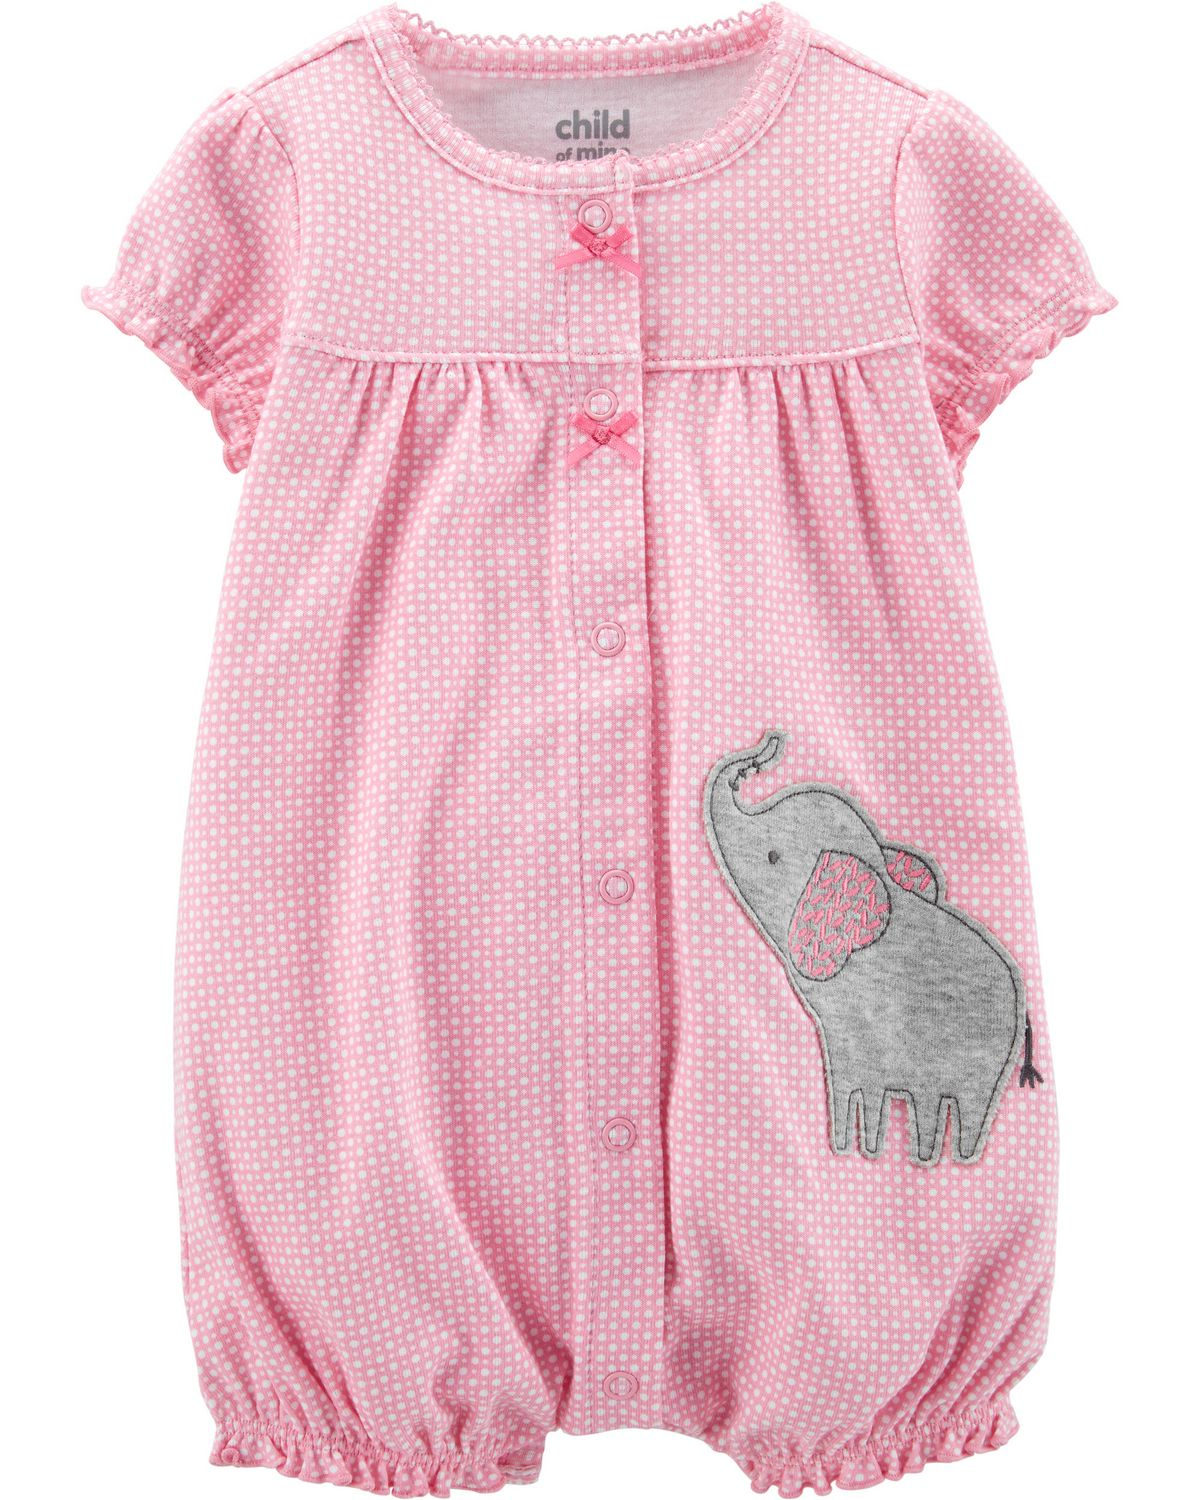 Child of Mine Carters Baby Girls Romper